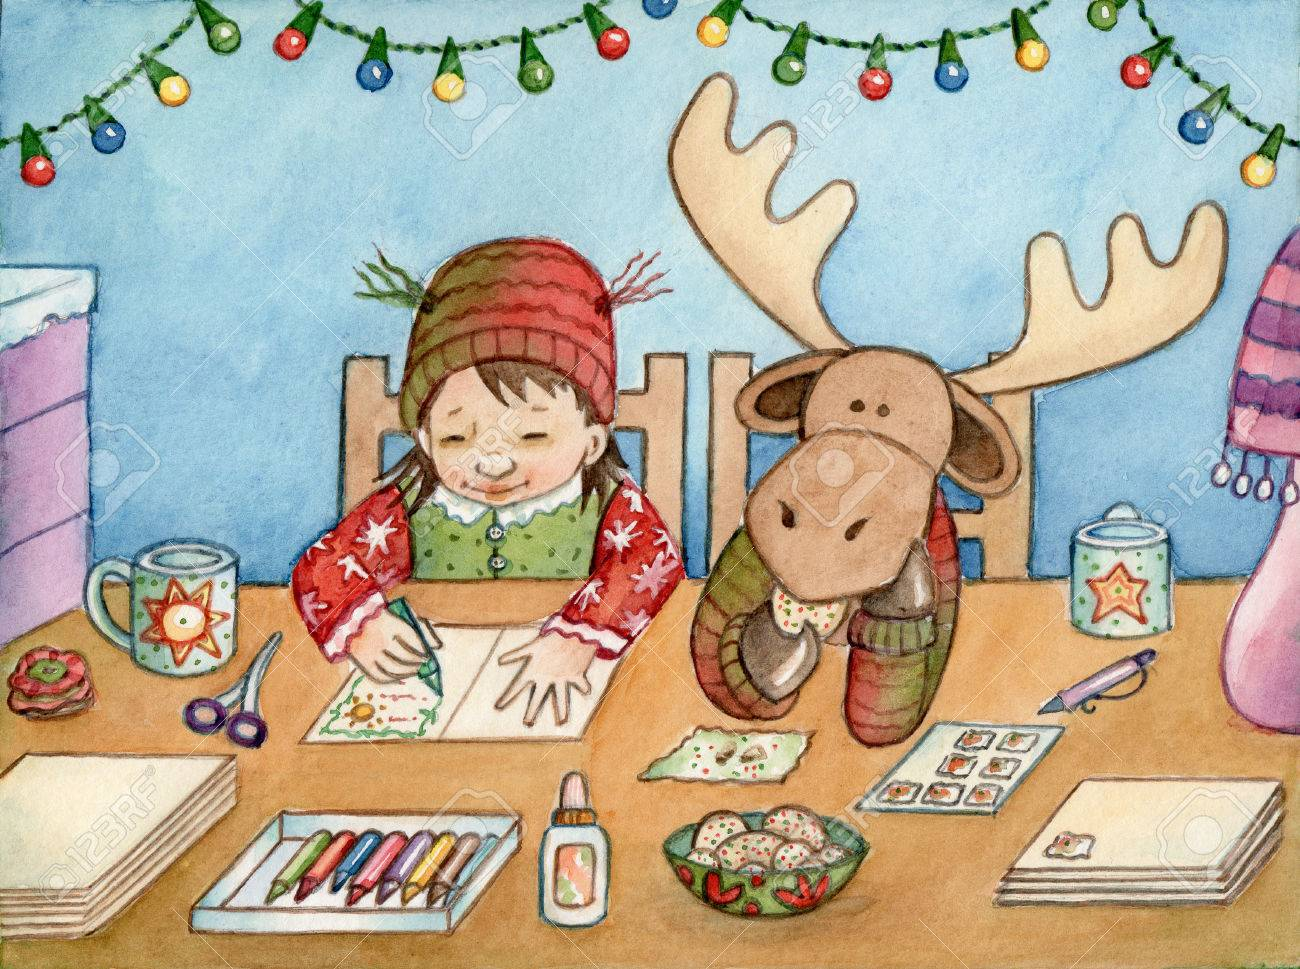 Card Making - Watercolor Illustration Of A Girl And Her Moose ...